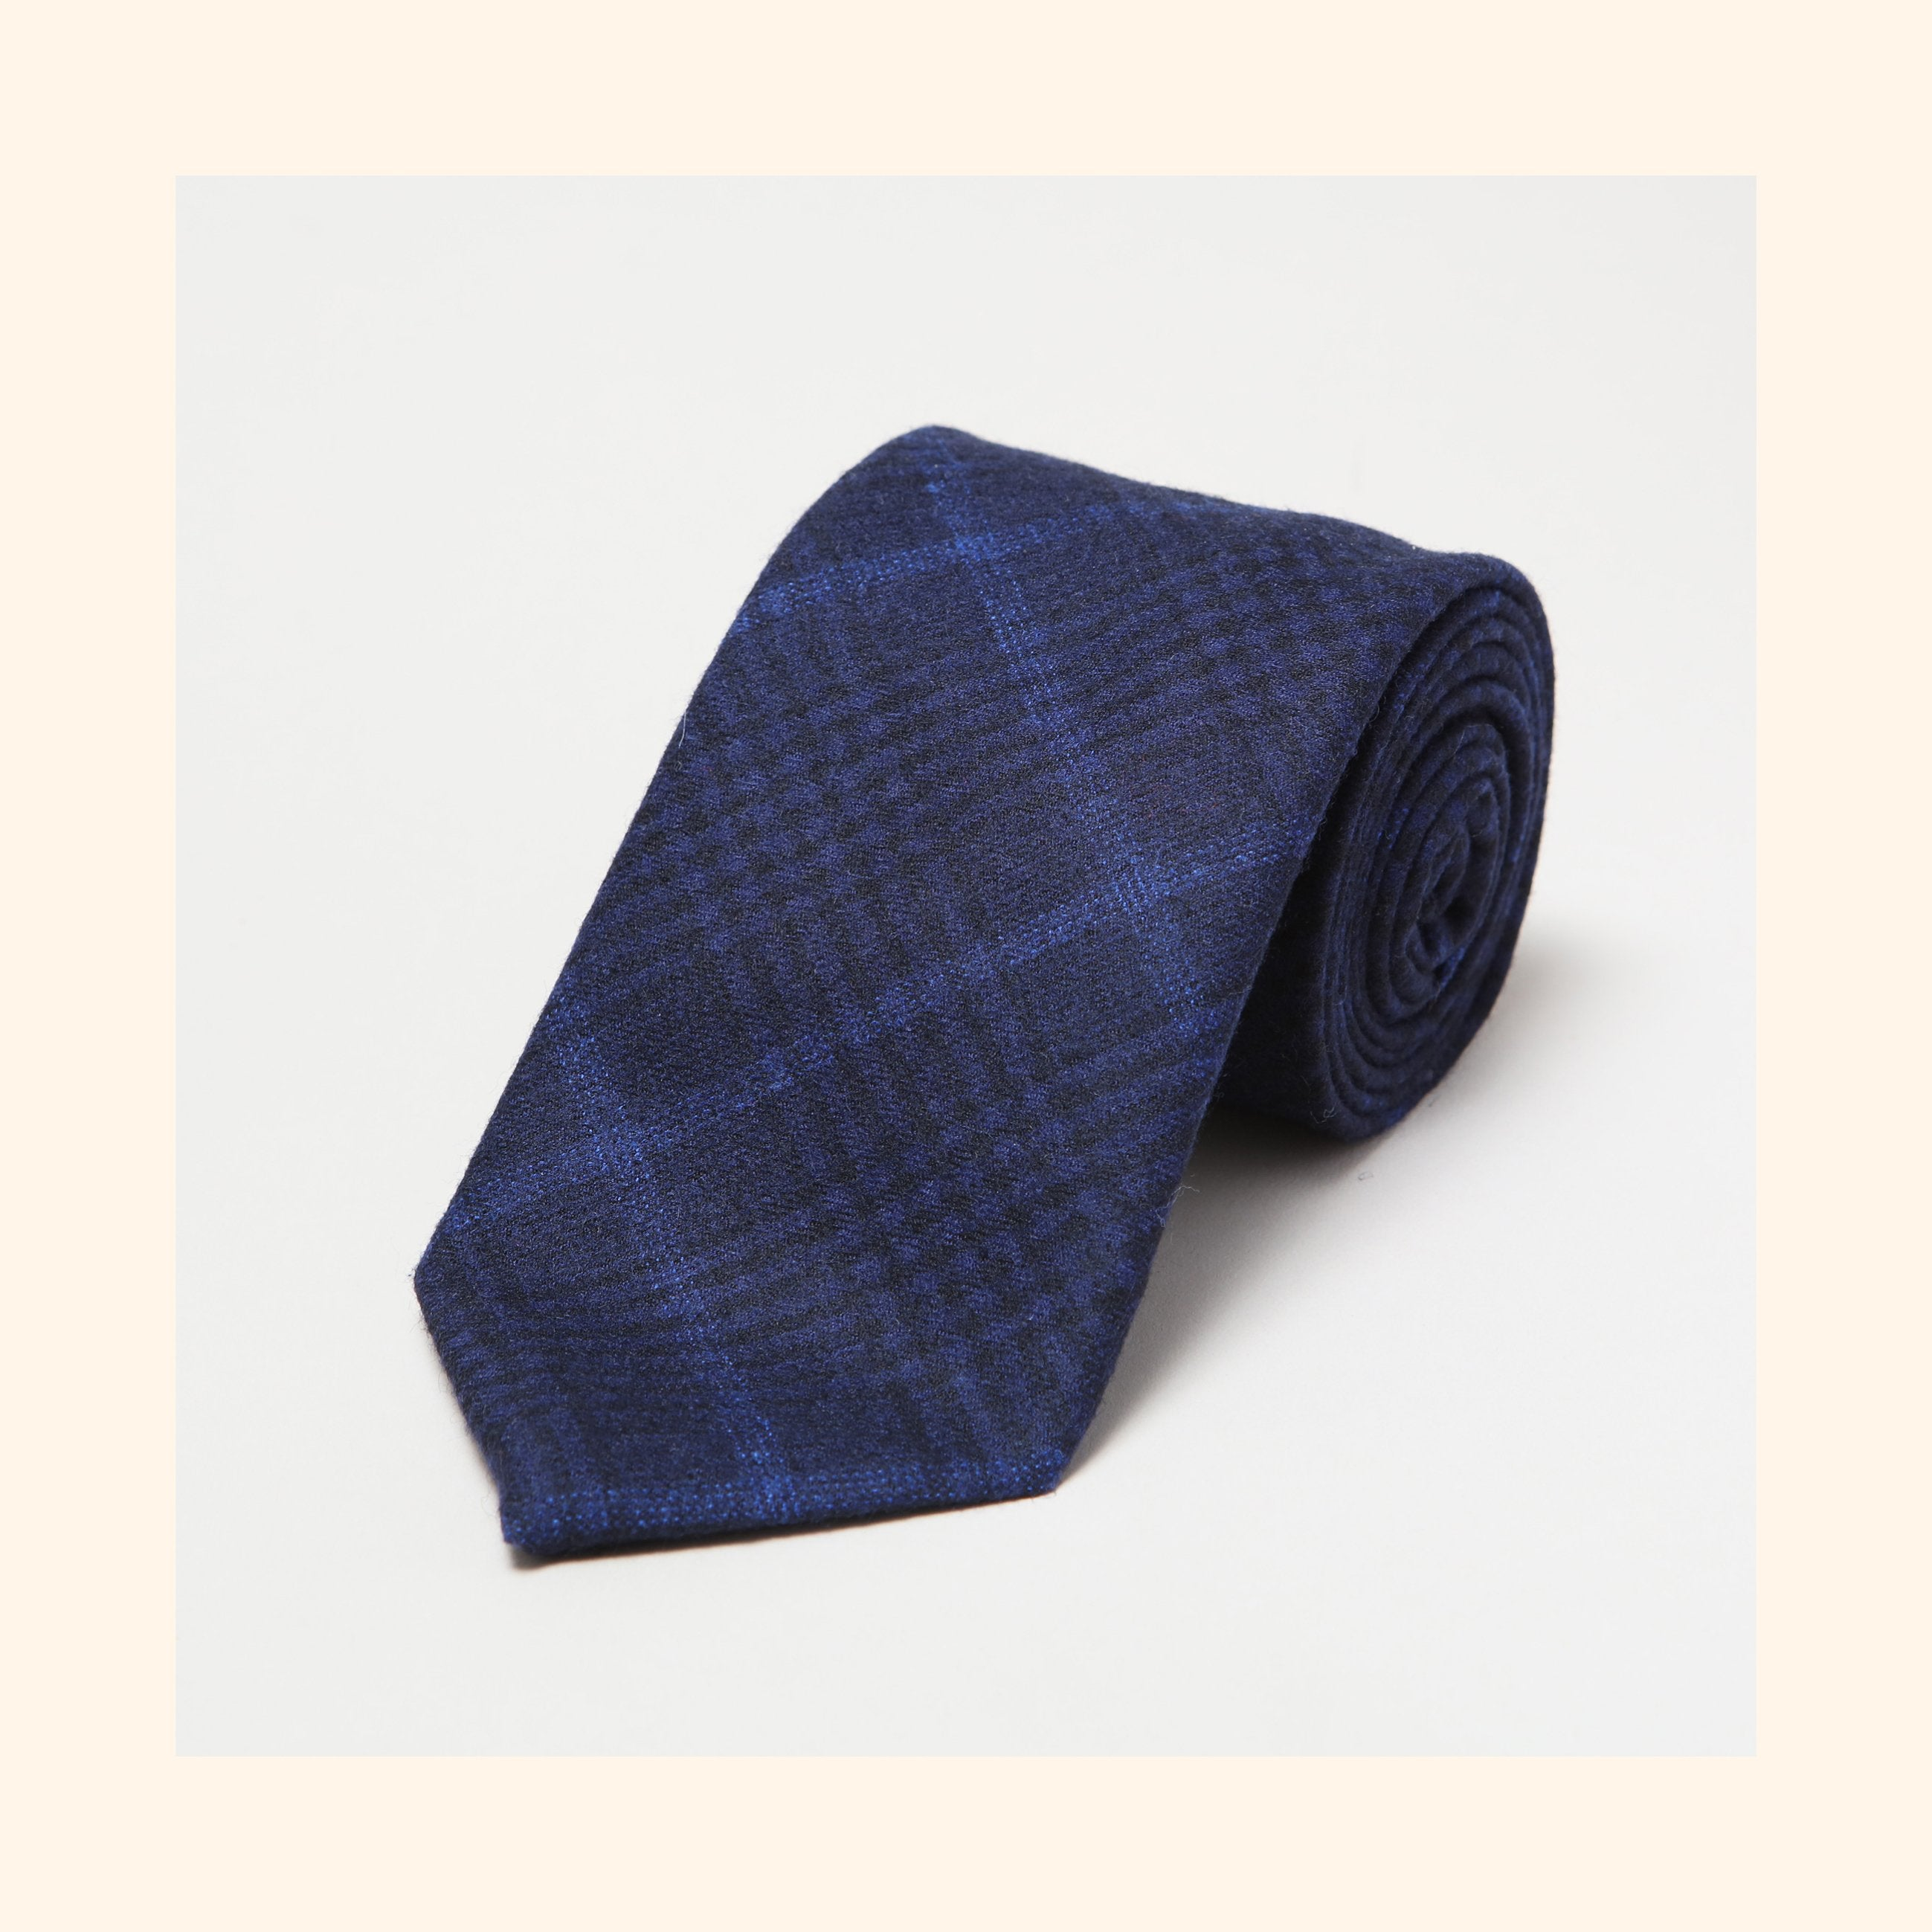 № 155 - Fox Brothers Navy & Onyx Midnight Prince of Wales Glen Check Pure Wool Tie